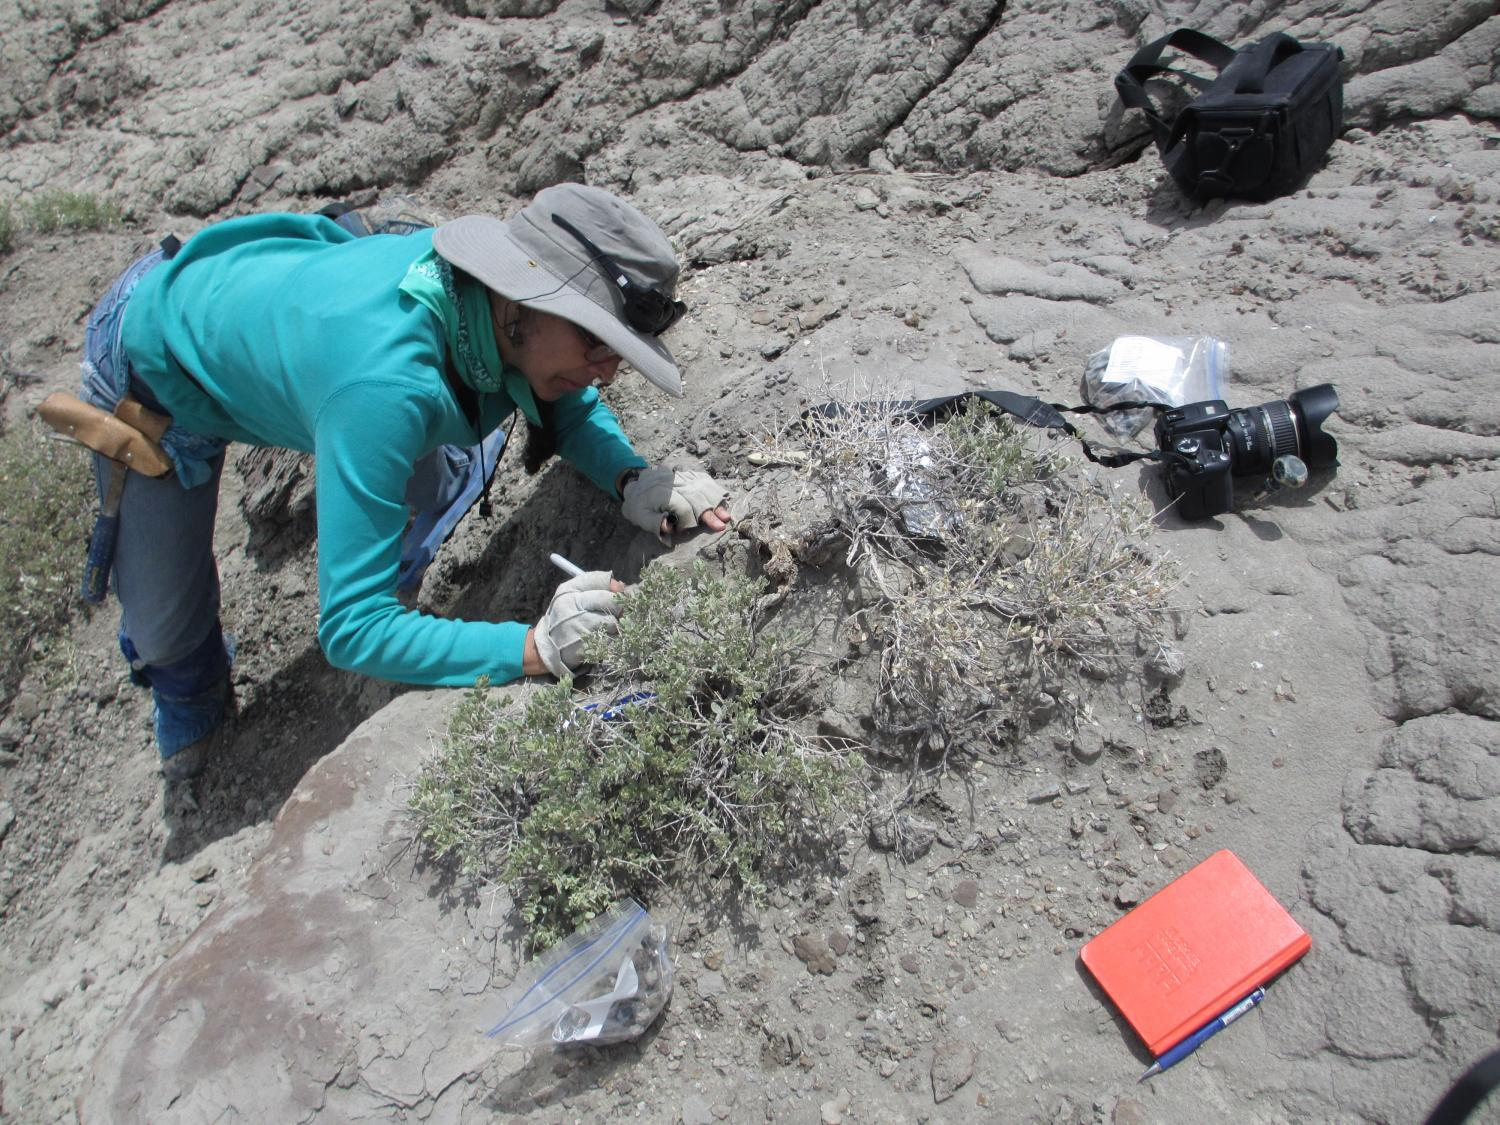 CU scientist: Some plant-eating dinosaurs also snacked on crustaceans